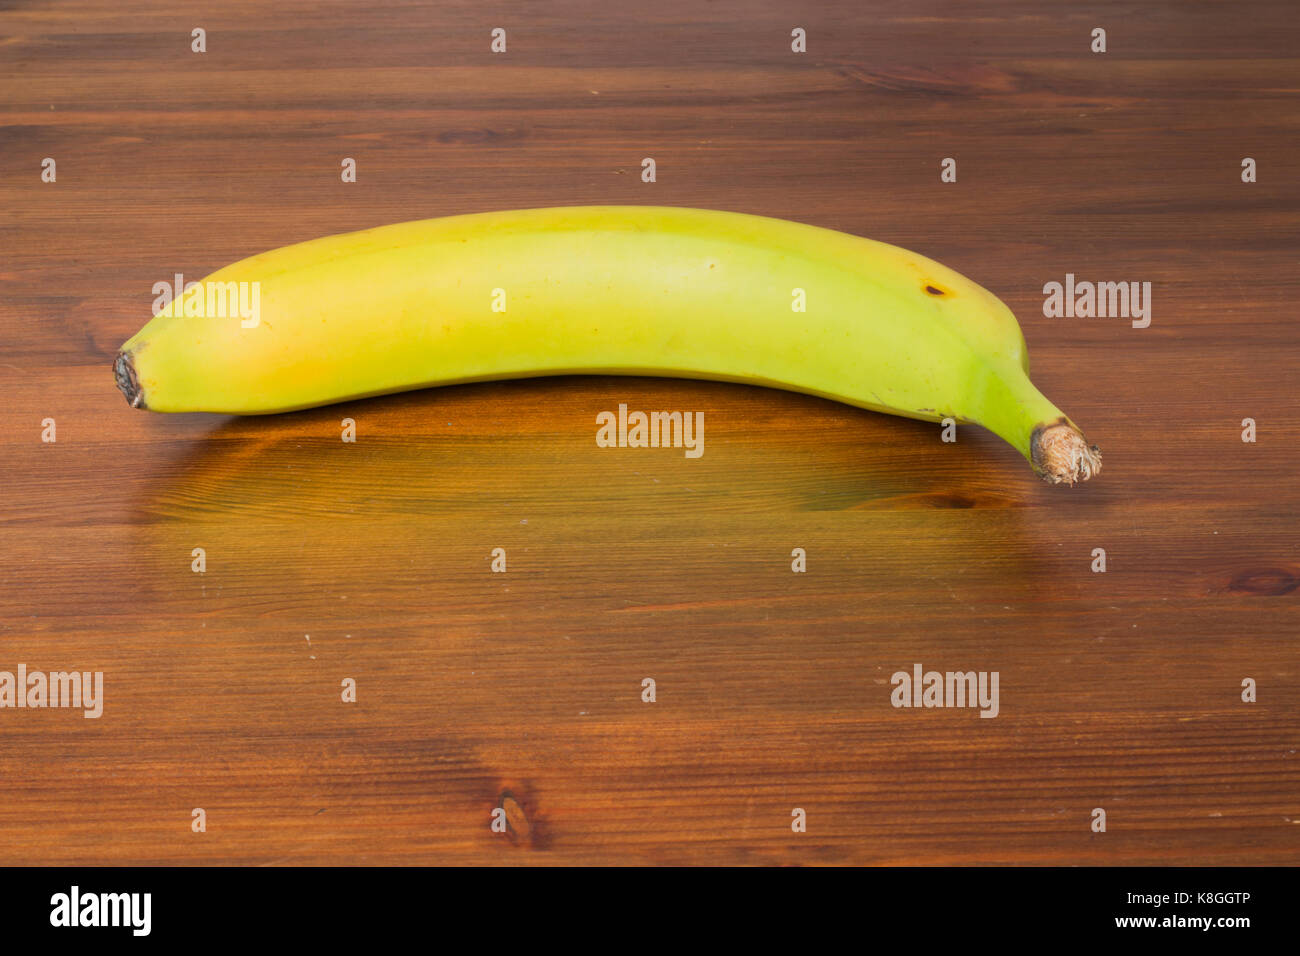 Banana On Table Yellow green banana on a wooden table.